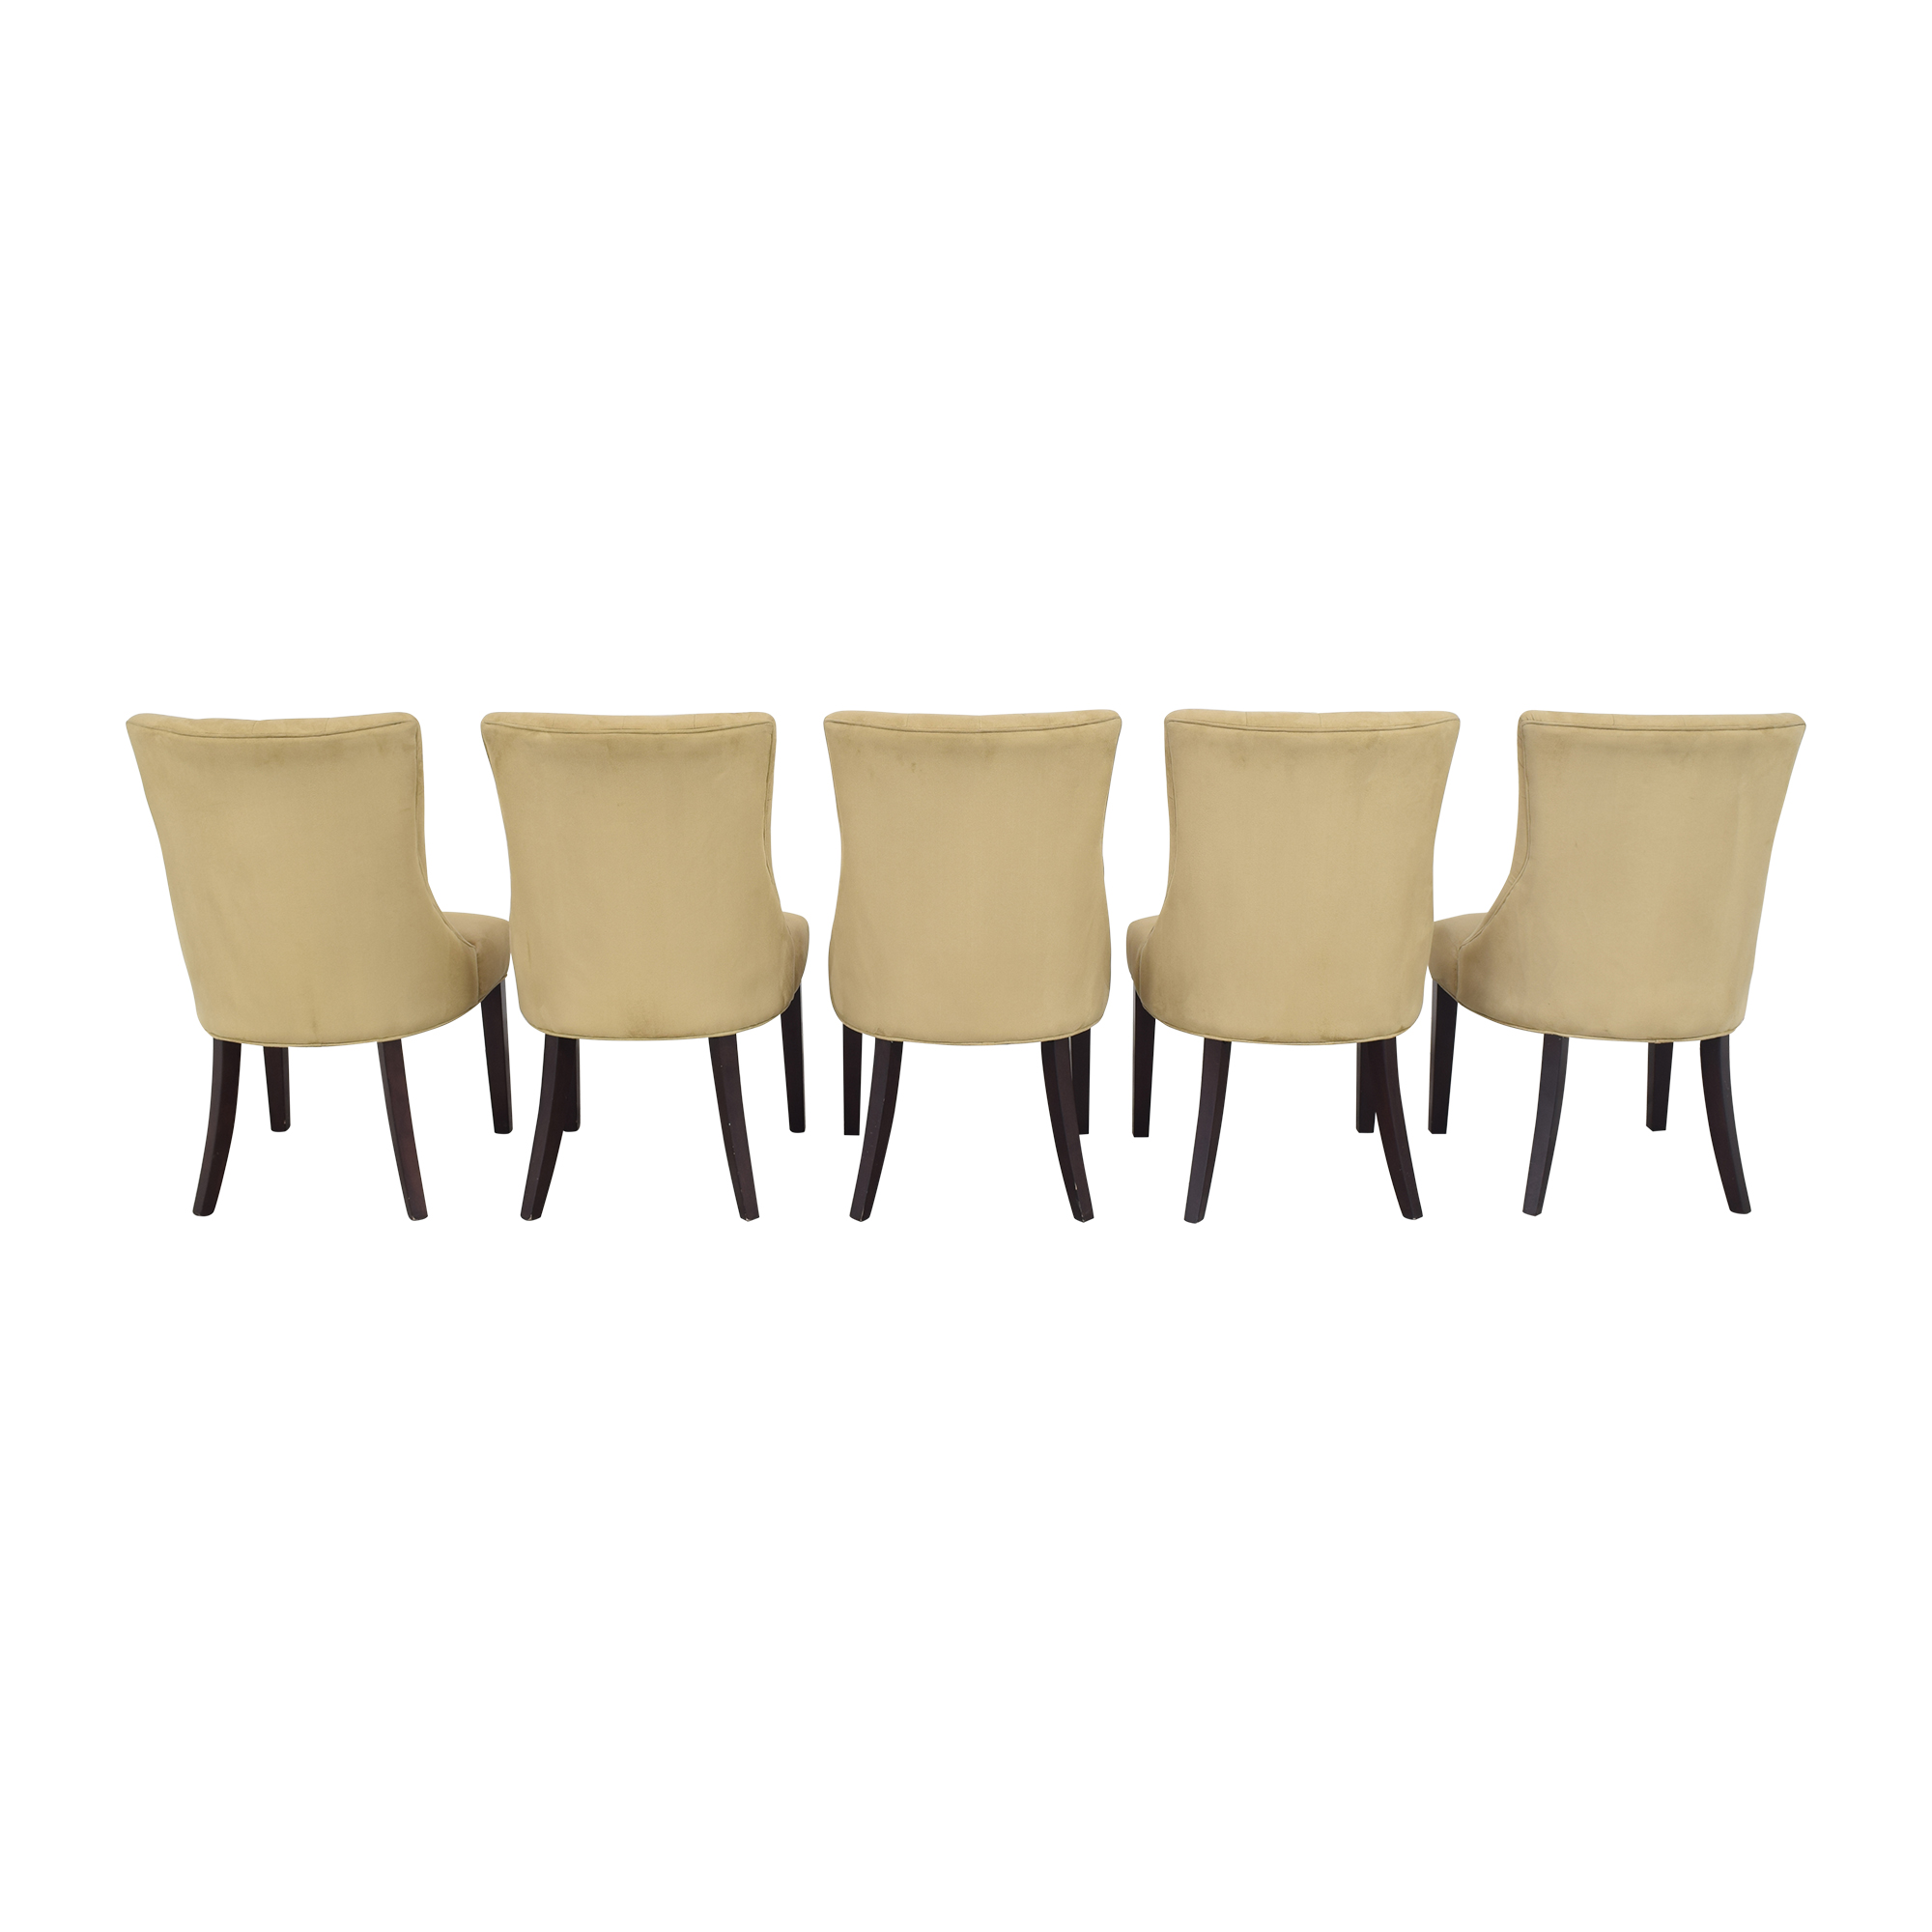 Pottery Barn Pottery Barn Hayes Tufted Dining Chairs Dining Chairs